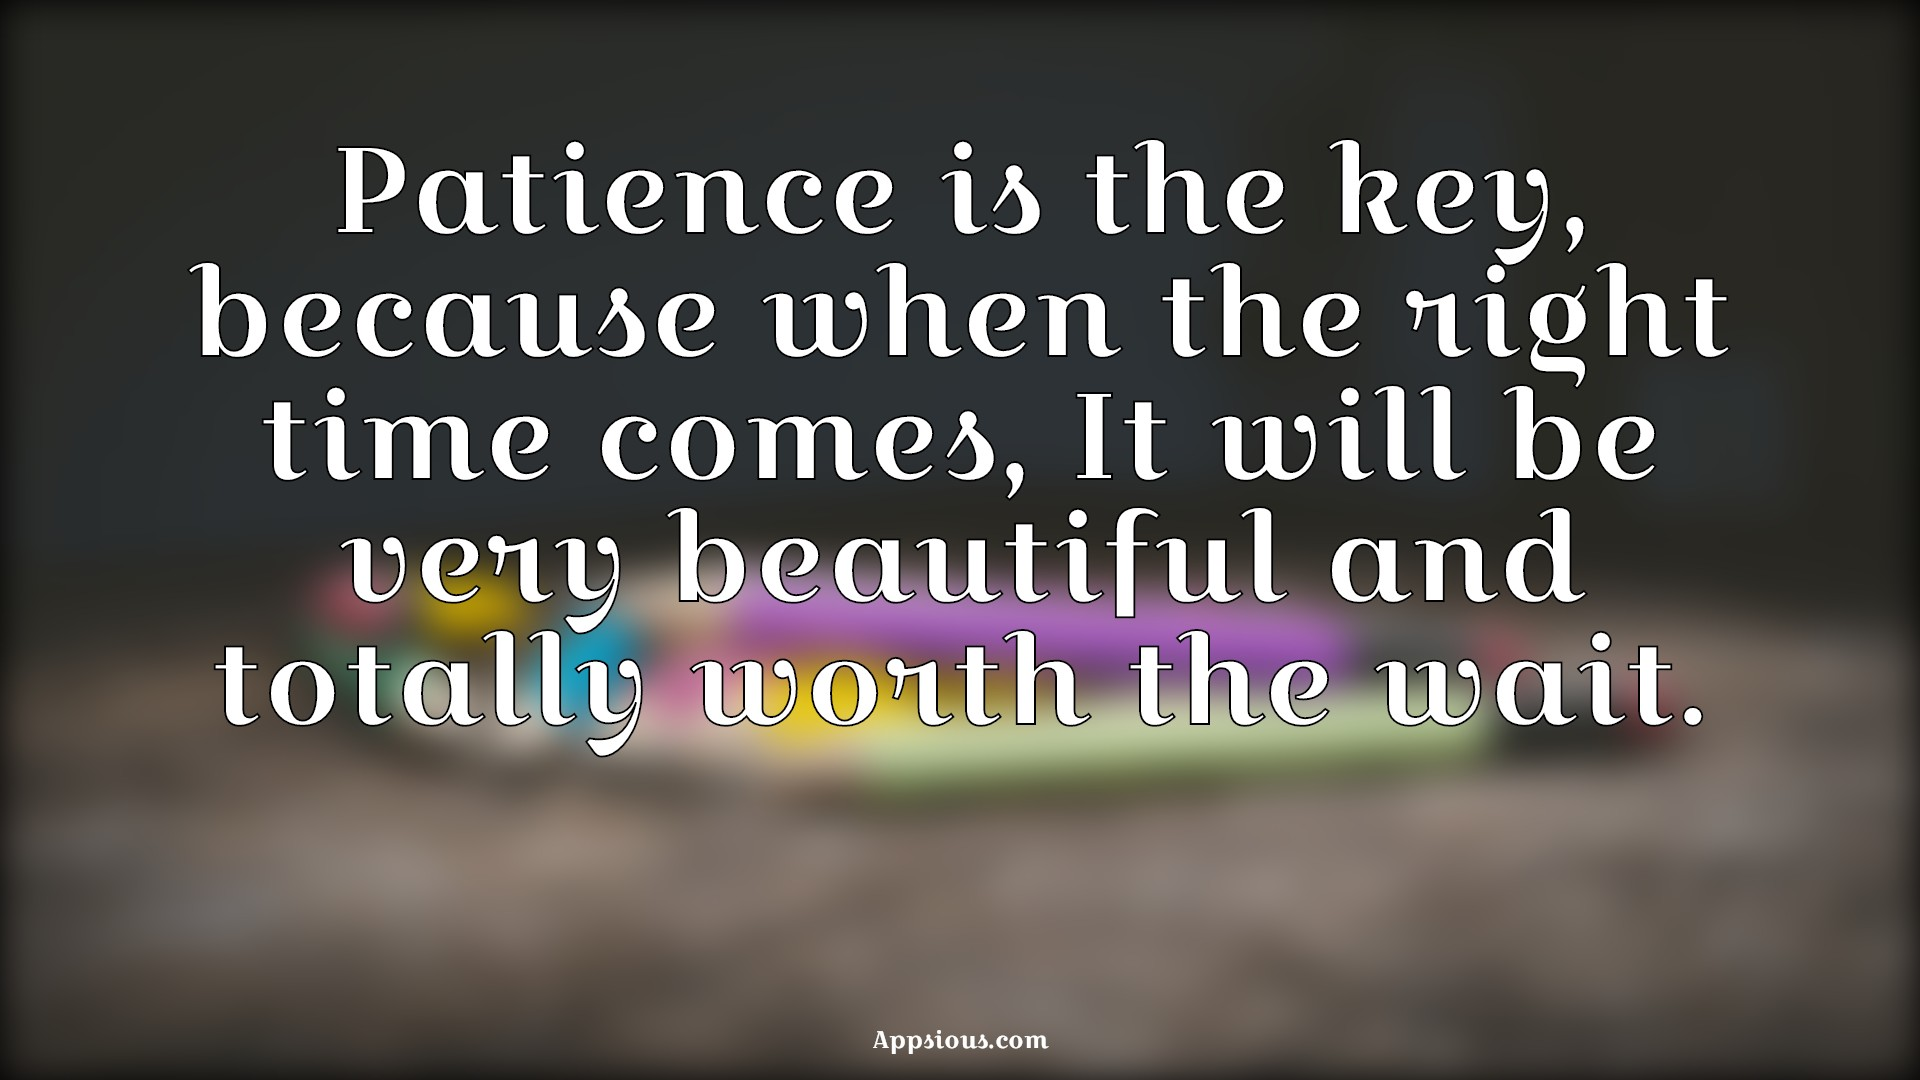 Patience is the key, because when the right time comes, It will be very beautiful and totally worth the wait.